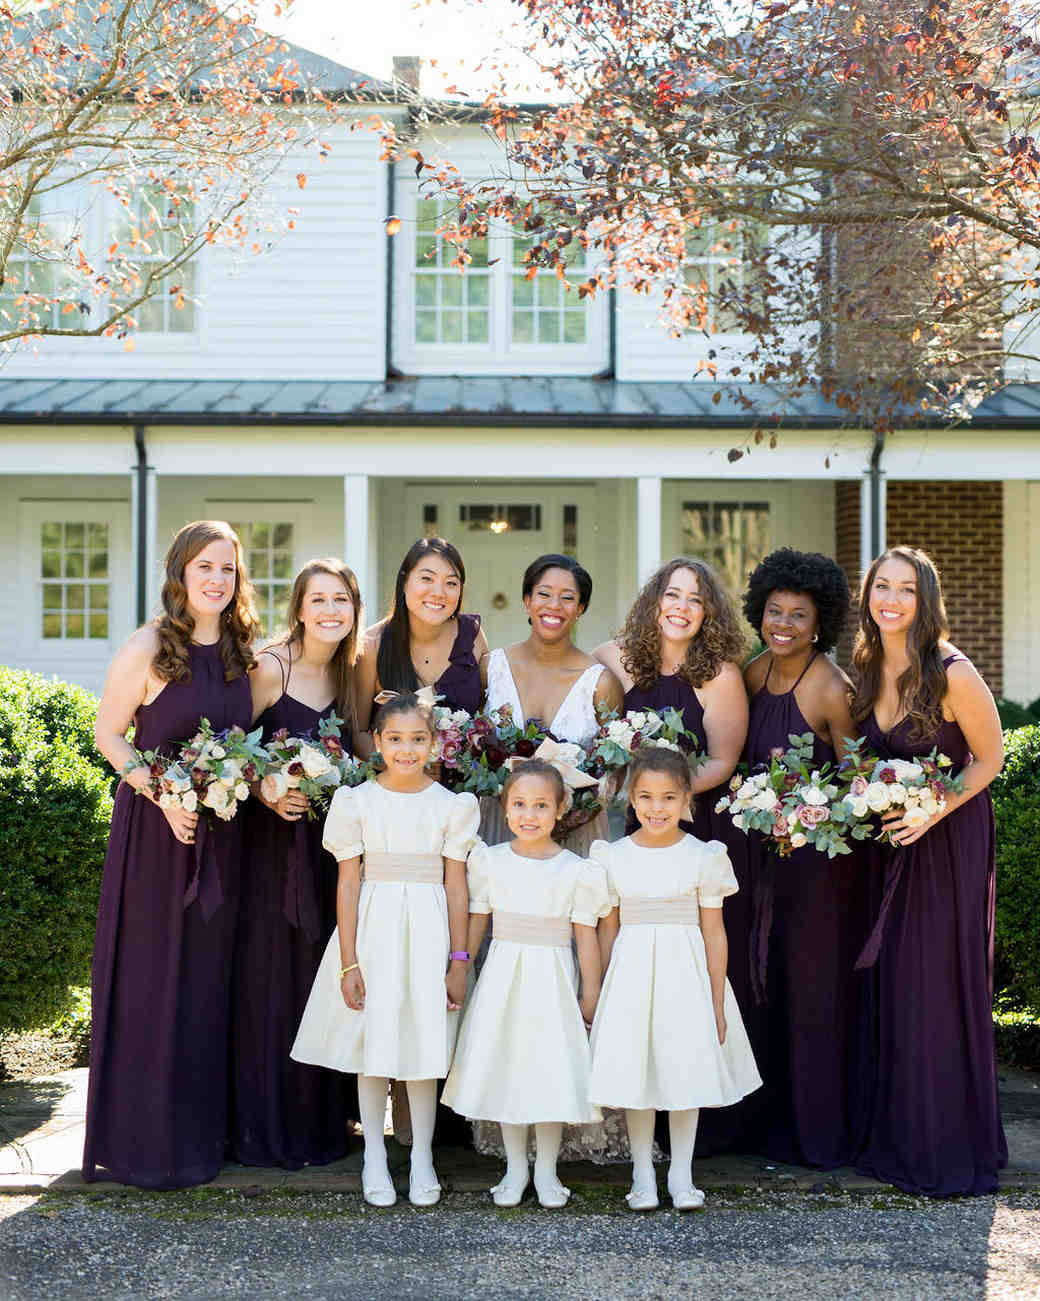 bridesmaids in aubergine dresses and flower girls in cream colored dresses